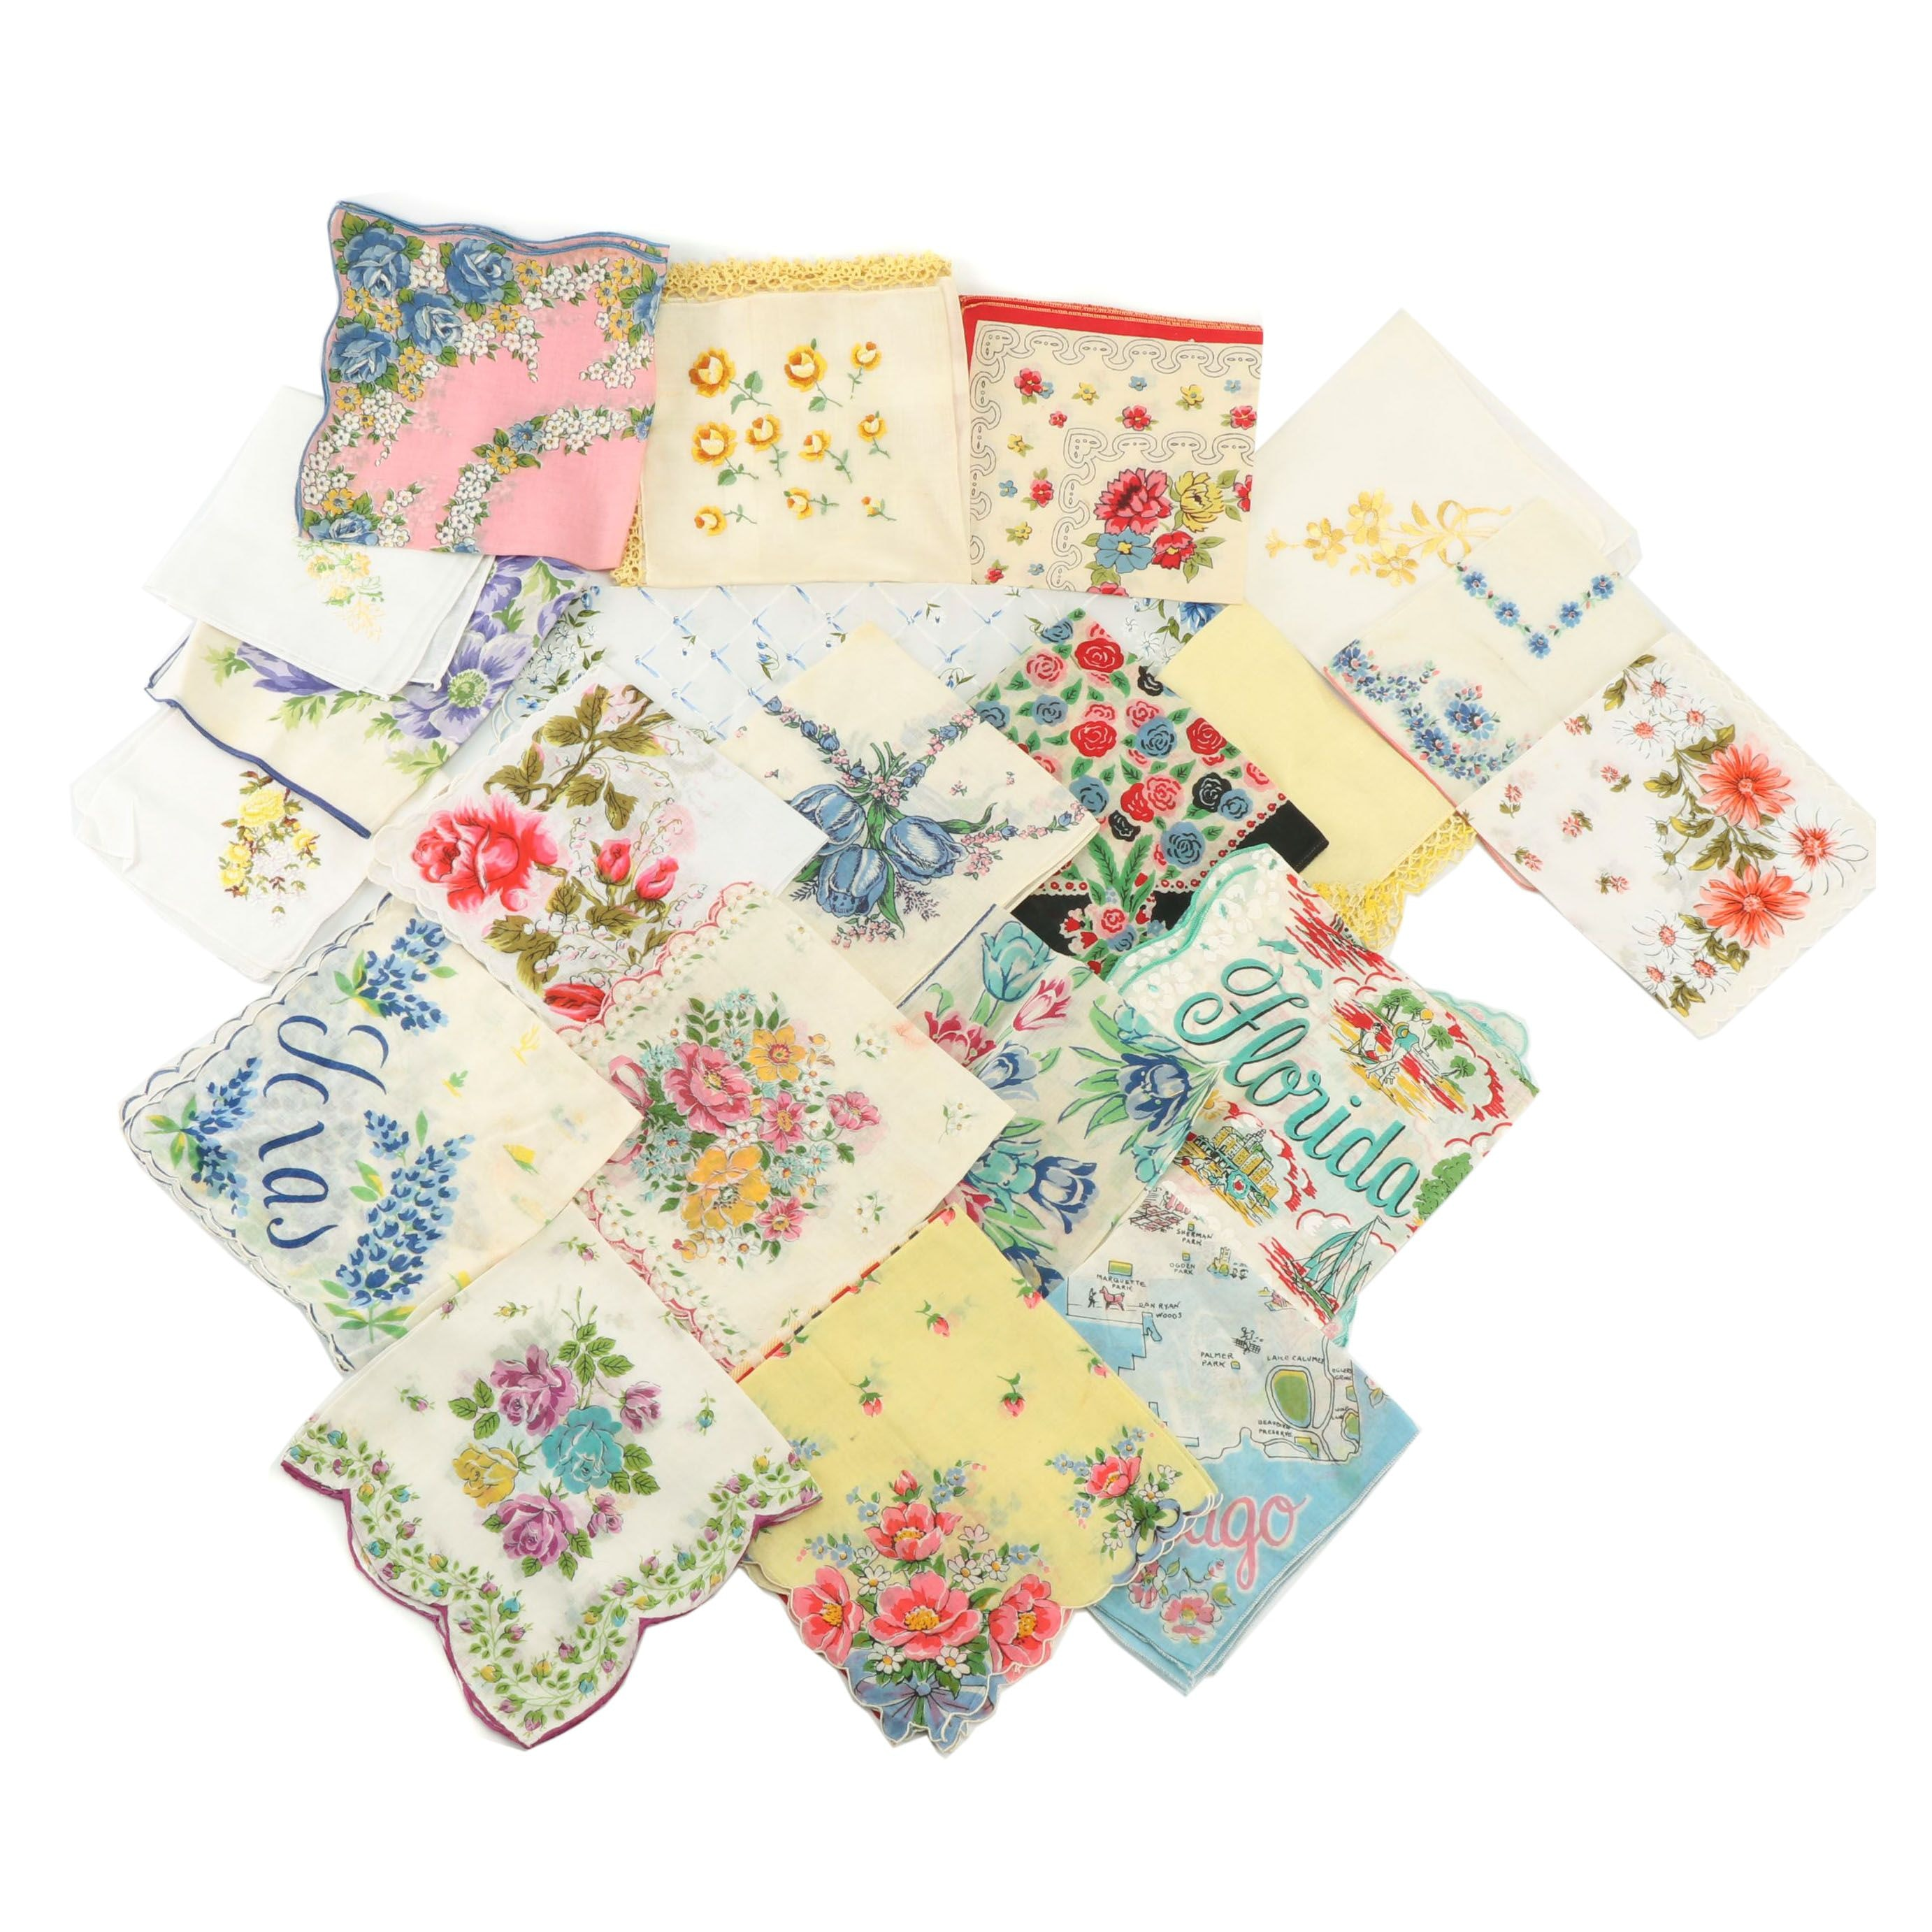 Cotton, Polyester and Nylon Handkerchiefs Including Floral Prints, Vintage